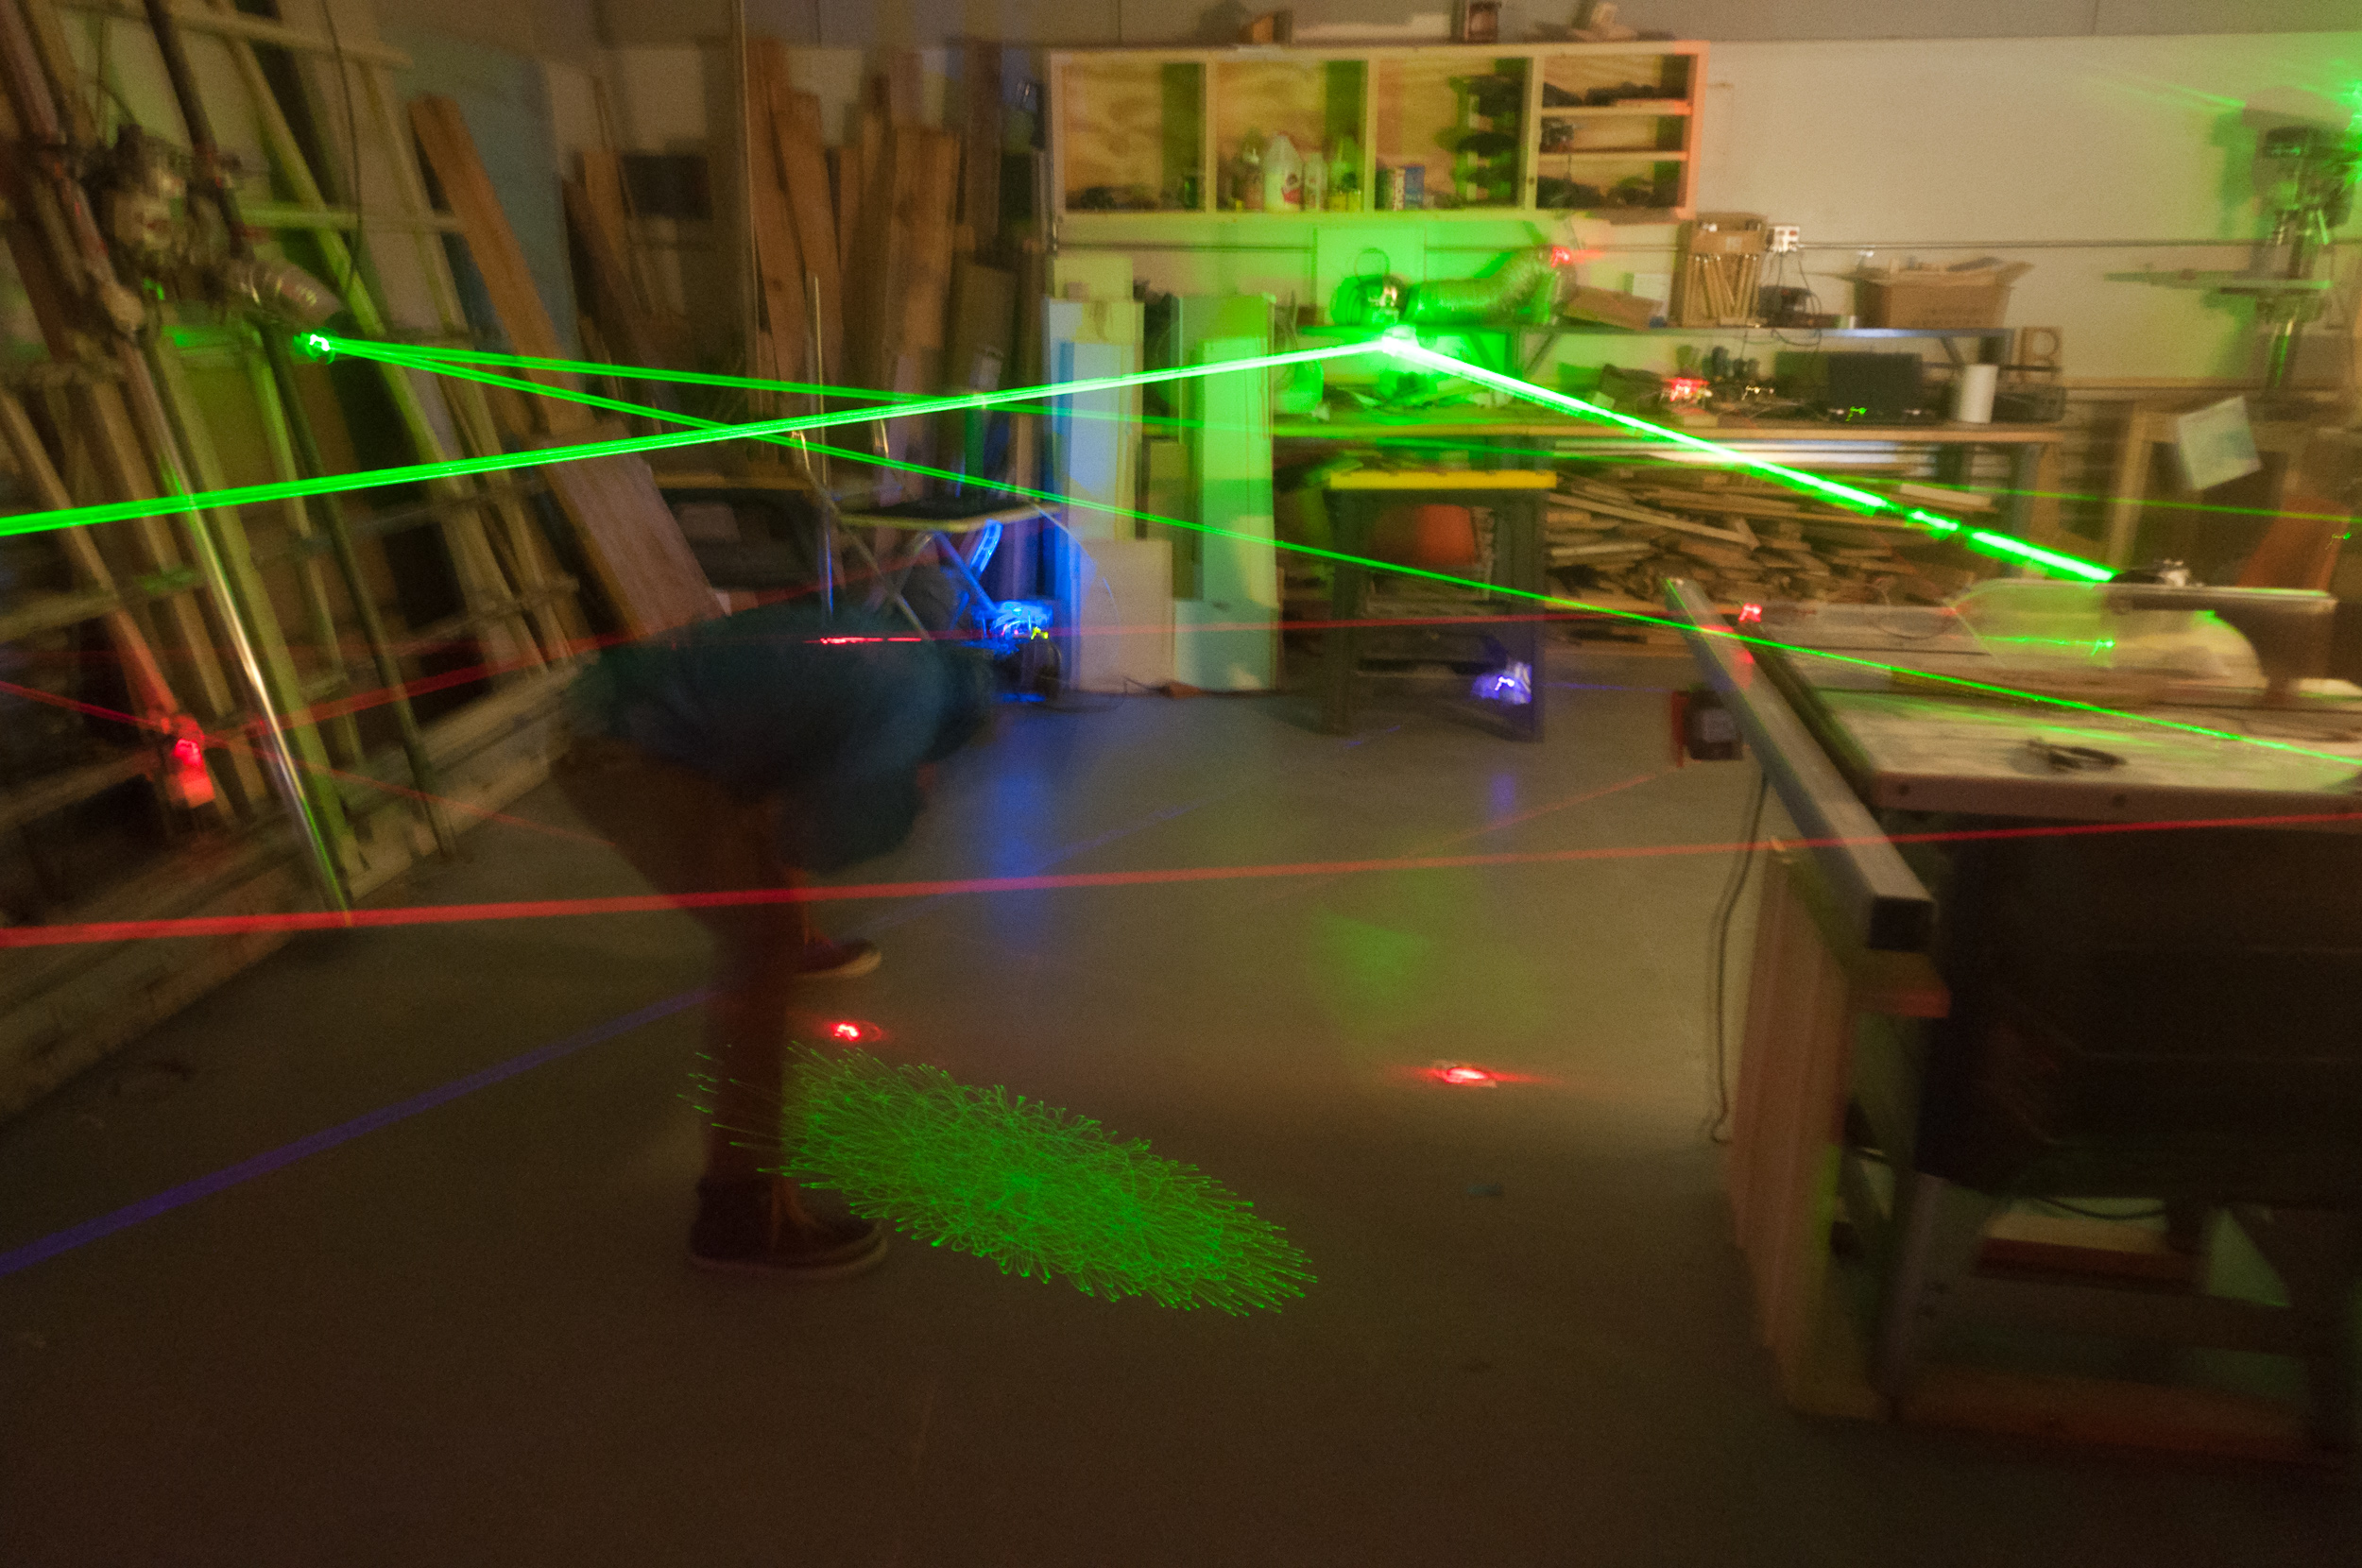 Go to the Milwaukee Maker Faire and Solve the Laser Maze